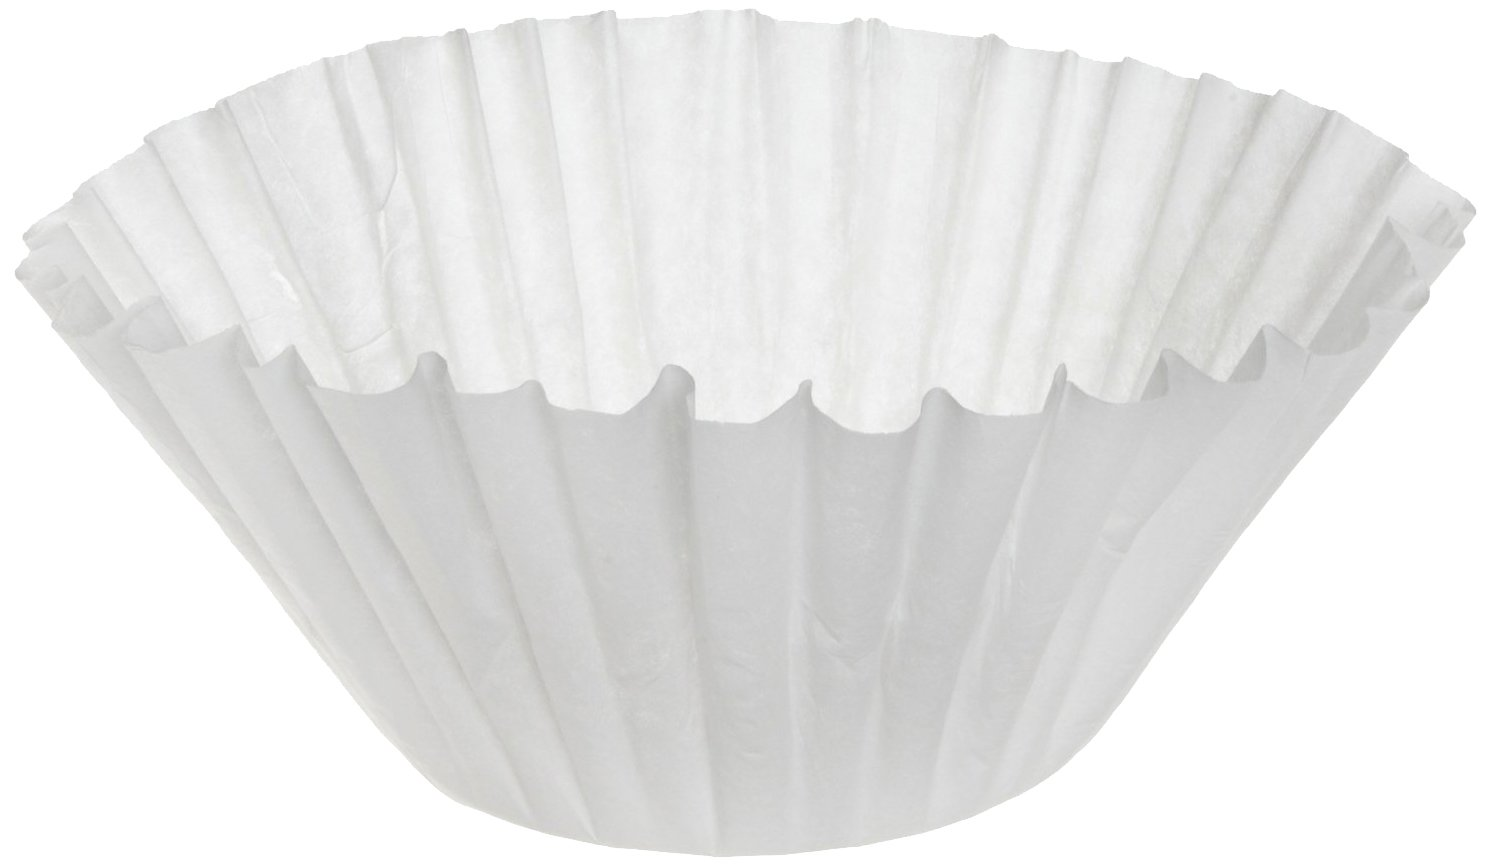 Permanent Coffee Filter or Paper Filter: Pros and Cons